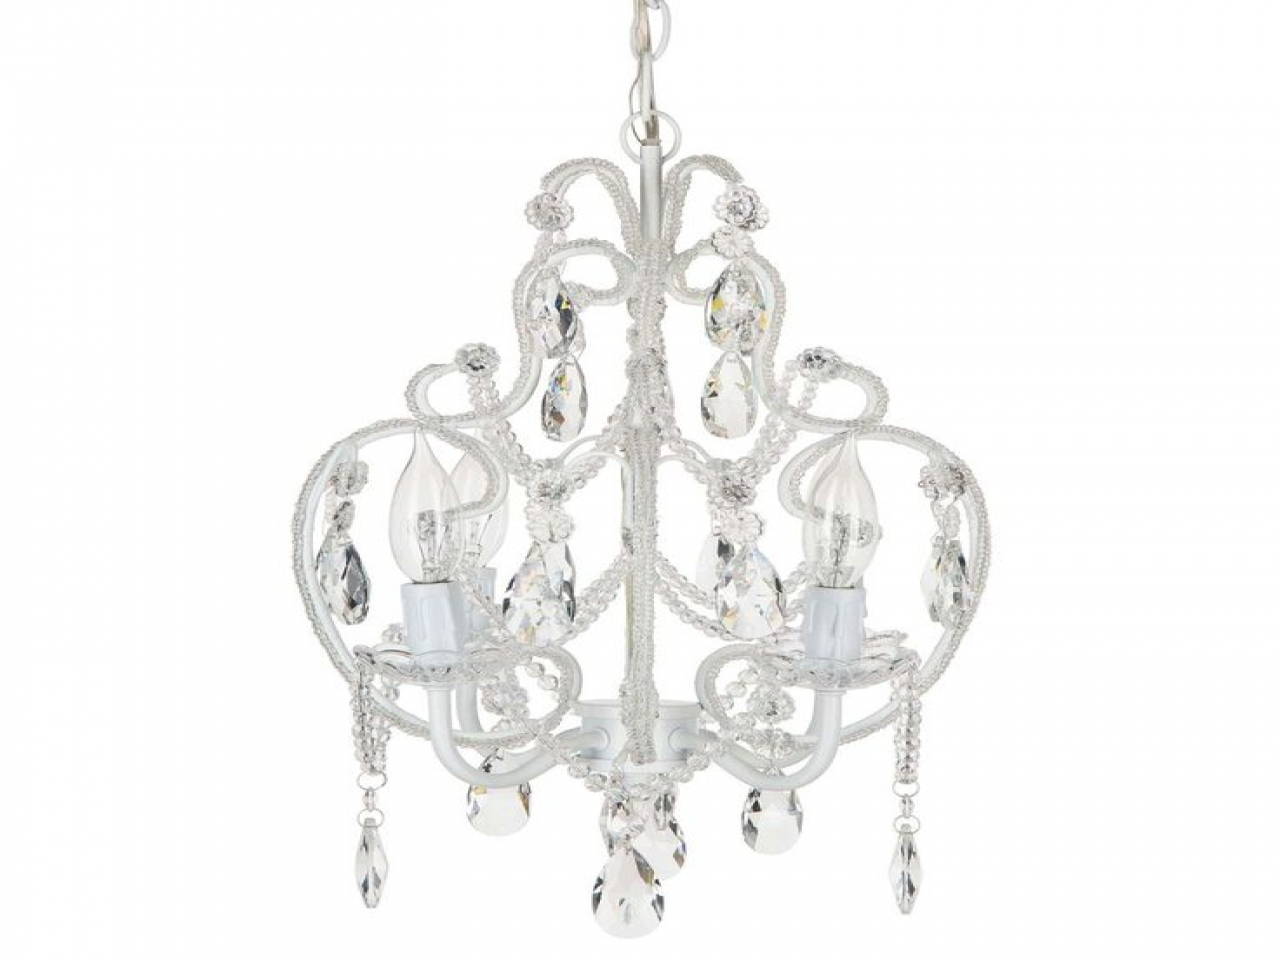 1280x960 Best 44 Magnum Revolver 44 Best Shop Crystal Chandeliers By Amalfi